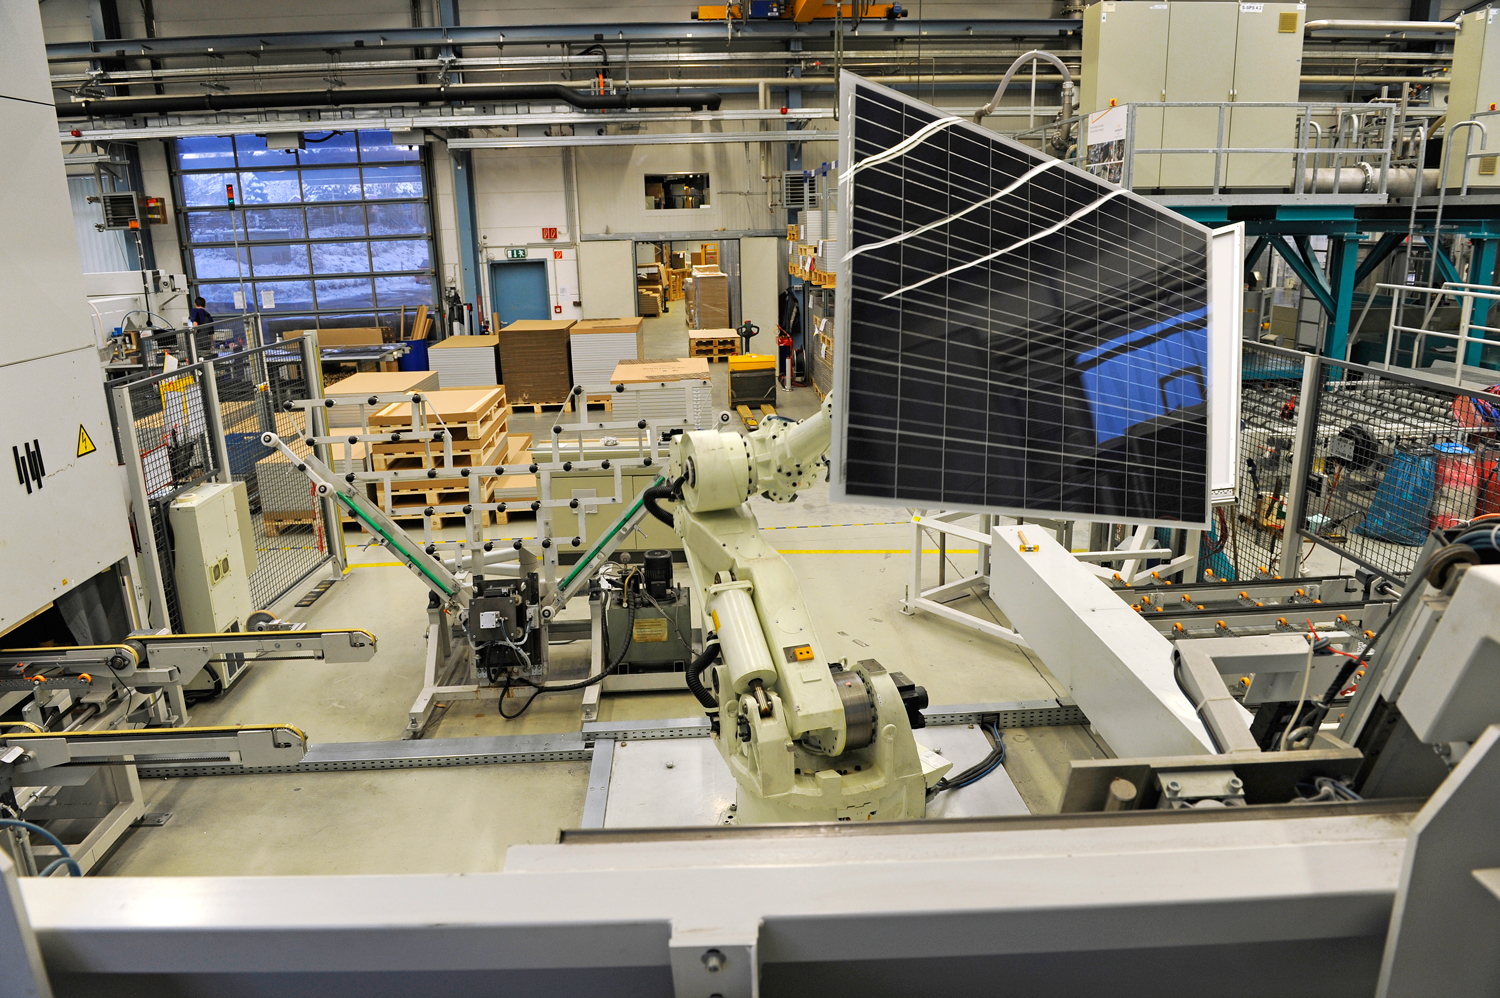 Meyer Burger has acquired for an undisclosed sum from the former SolarWorld facilities in Freiberg, Saxony, which had at least 650MW of module assembly capacity and around 370MW of solar cell capacity. Image: SolarWorld